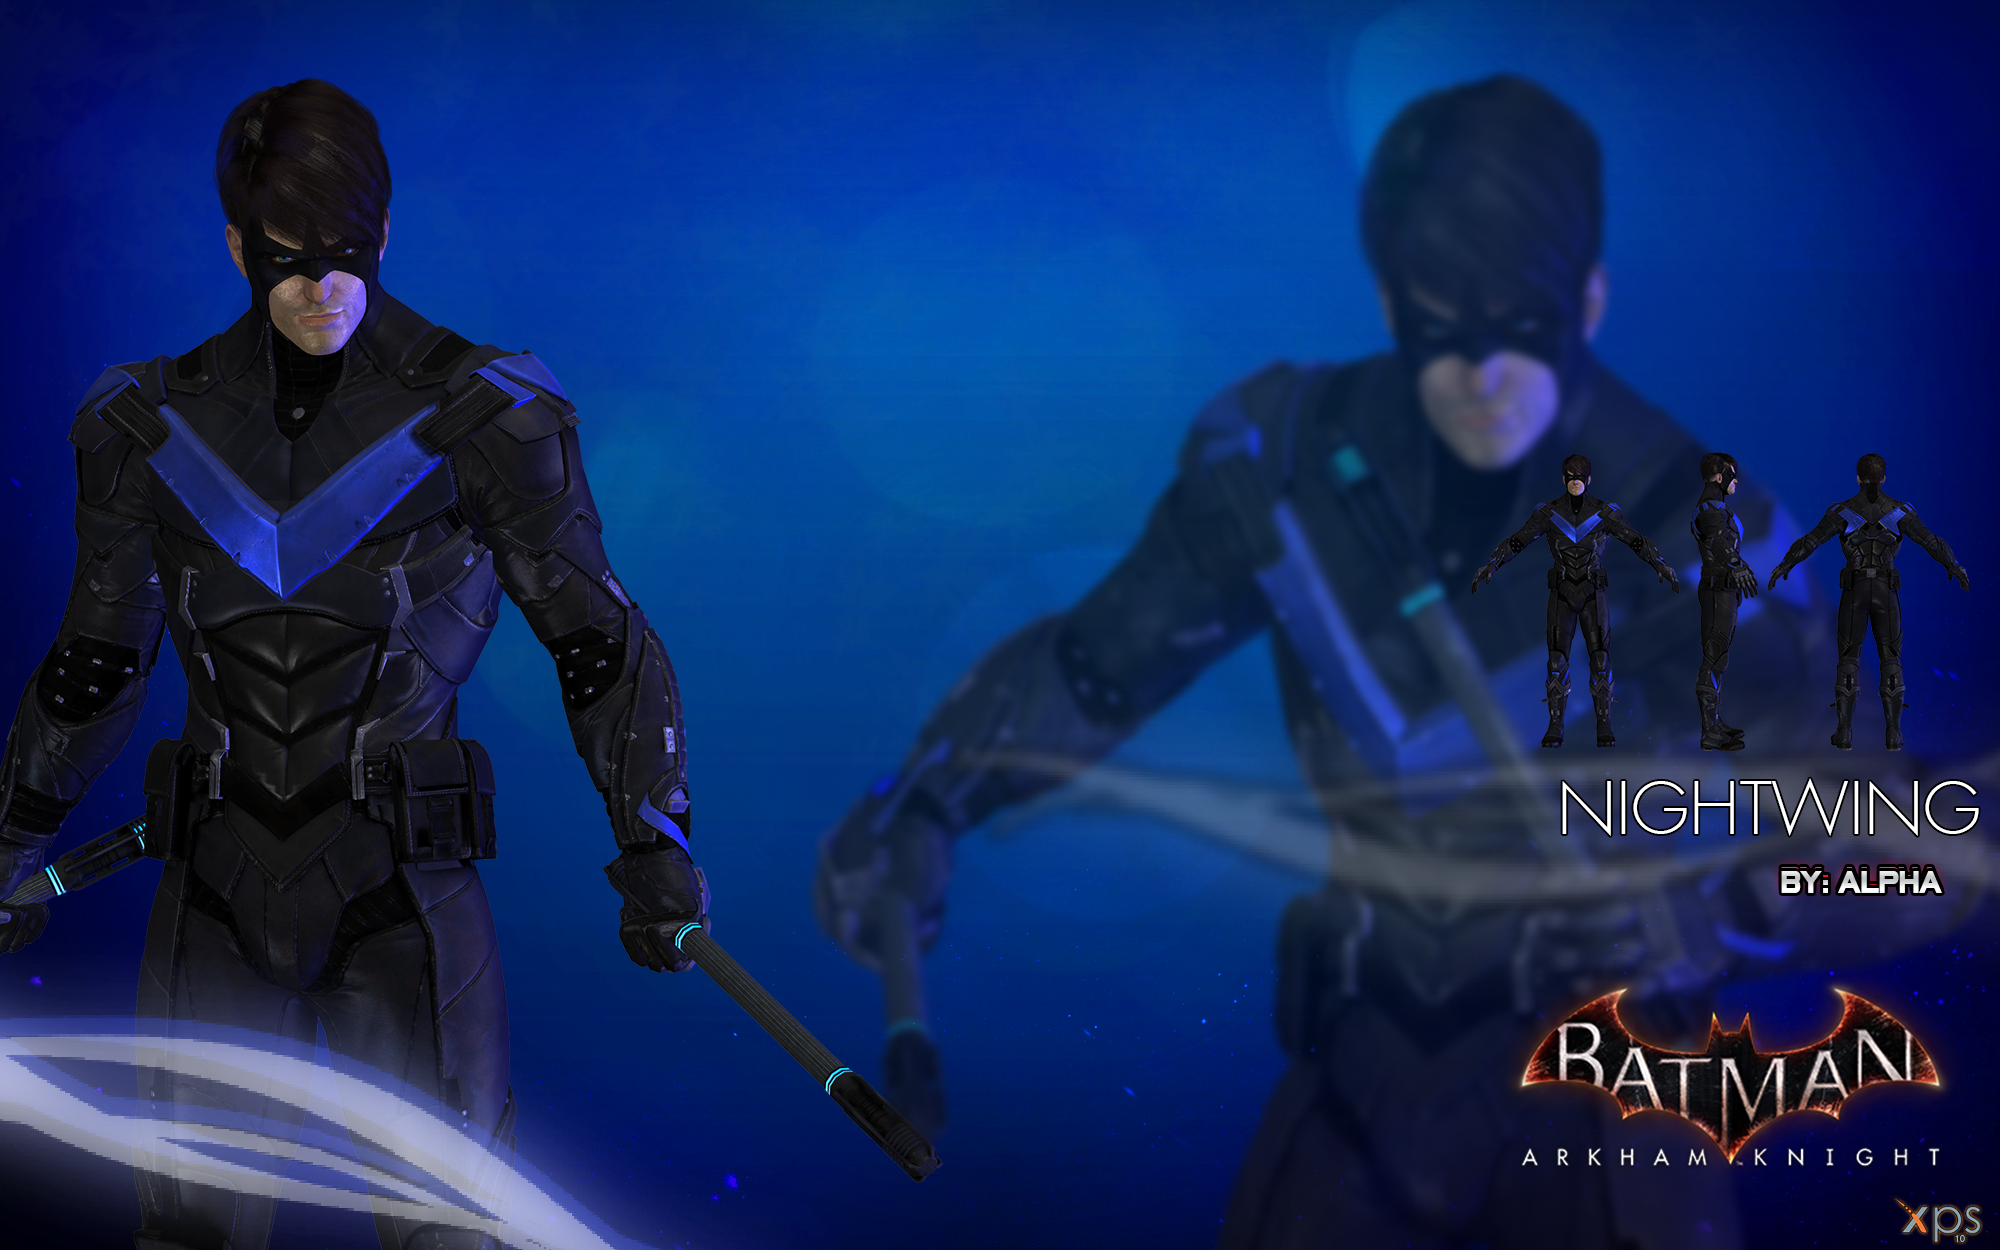 Batman arkham knight nightwing by xnasyndicate on deviantart batman arkham knight nightwing by xnasyndicate buycottarizona Choice Image